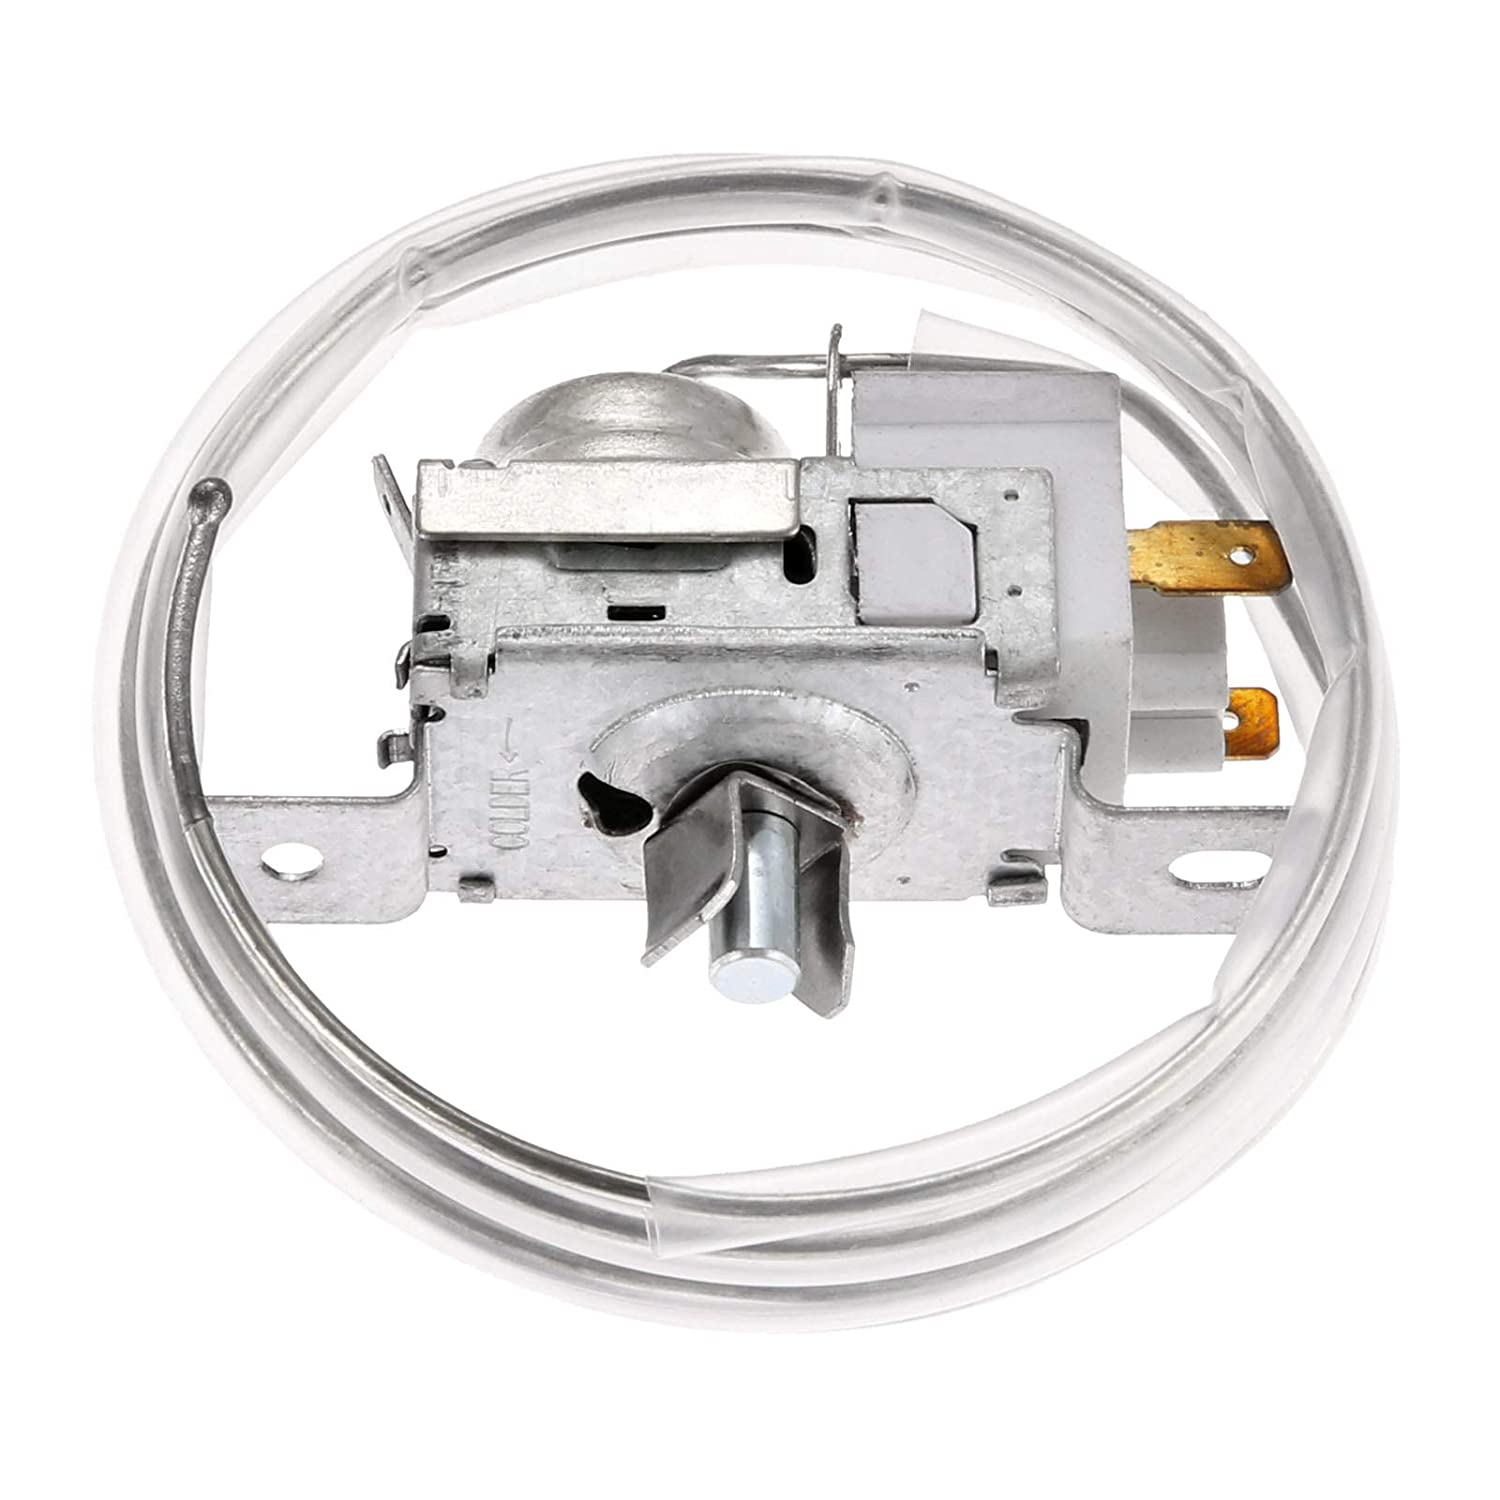 2198202 Refrigerator Cold Control Thermostat, Replaces Part # 2161284 2198201 AP3037004 PS329884 WP2198202 2169112, Update Durable Replacement Part Fit for Whirlpool, Kenmore, Roper, Estate, Crosley